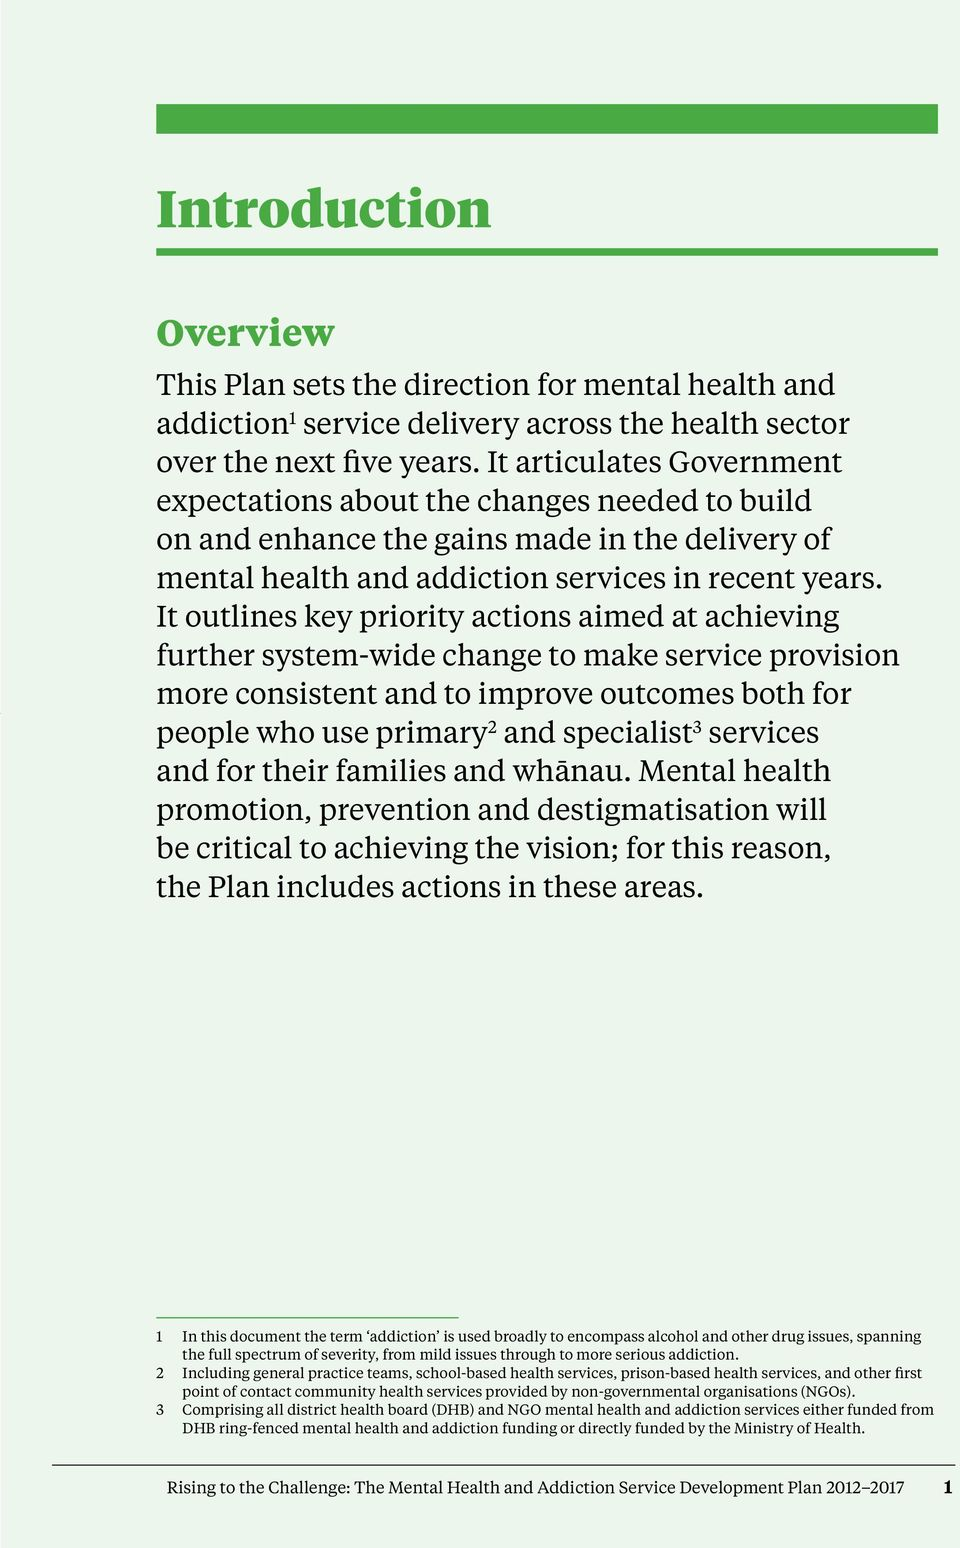 It outlines key priority actions aimed at achieving further system-wide change to make service provision more consistent and to improve outcomes both for people who use primary 2 and specialist 3